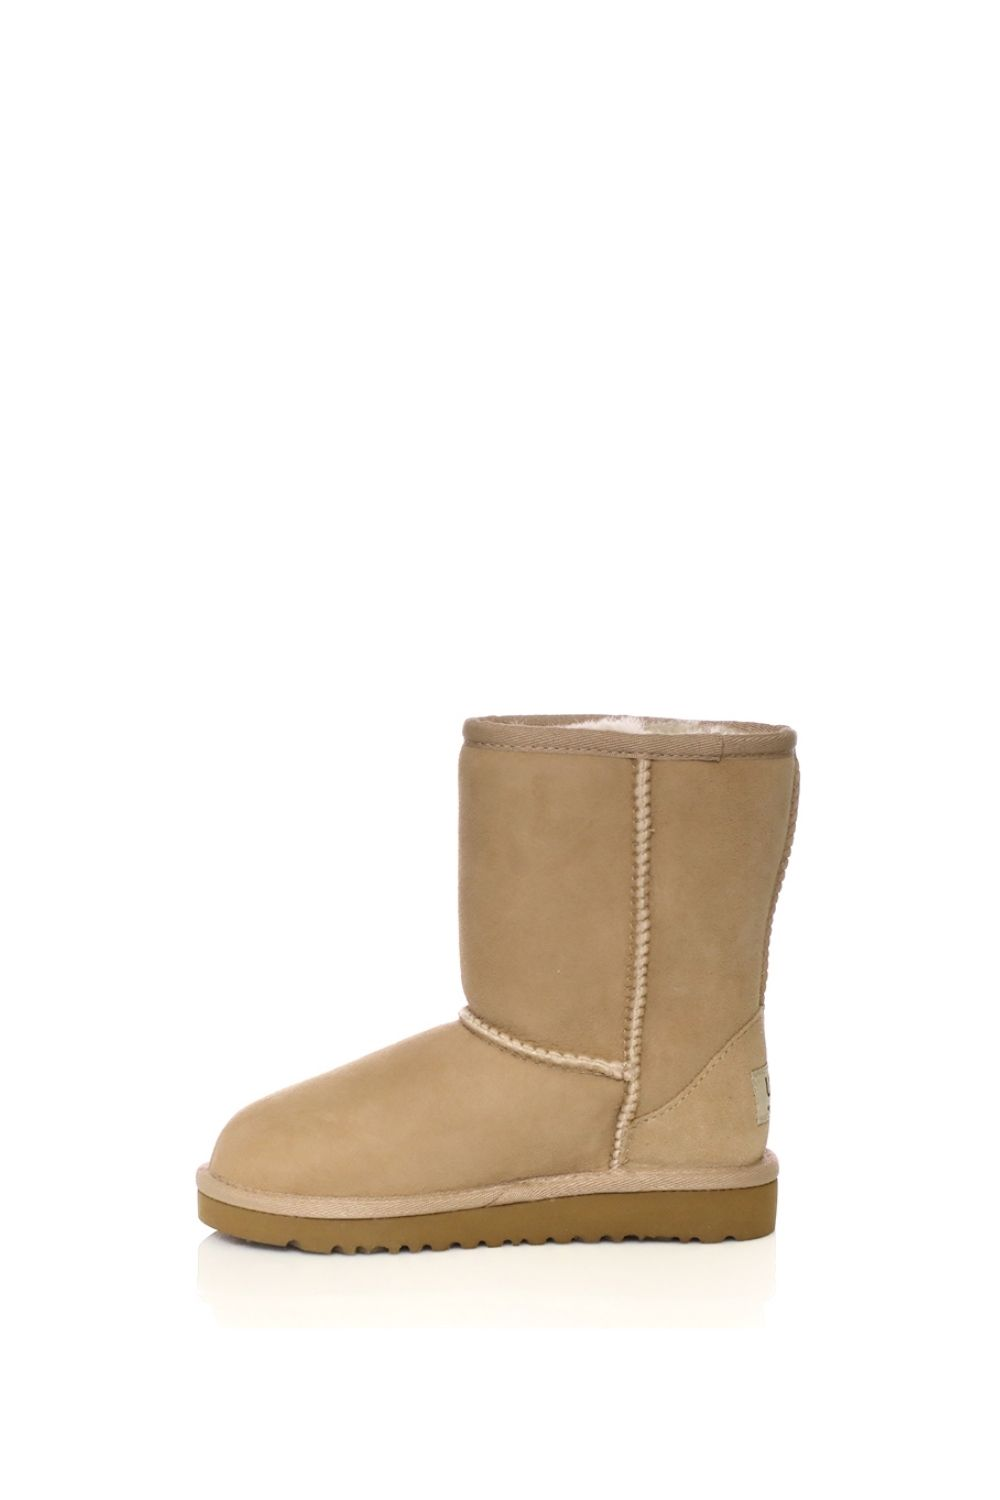 1489dd2ff7 UGG - Παιδικές κλασικές μπότες Ugg μπεζ - Roe Shoes Collection